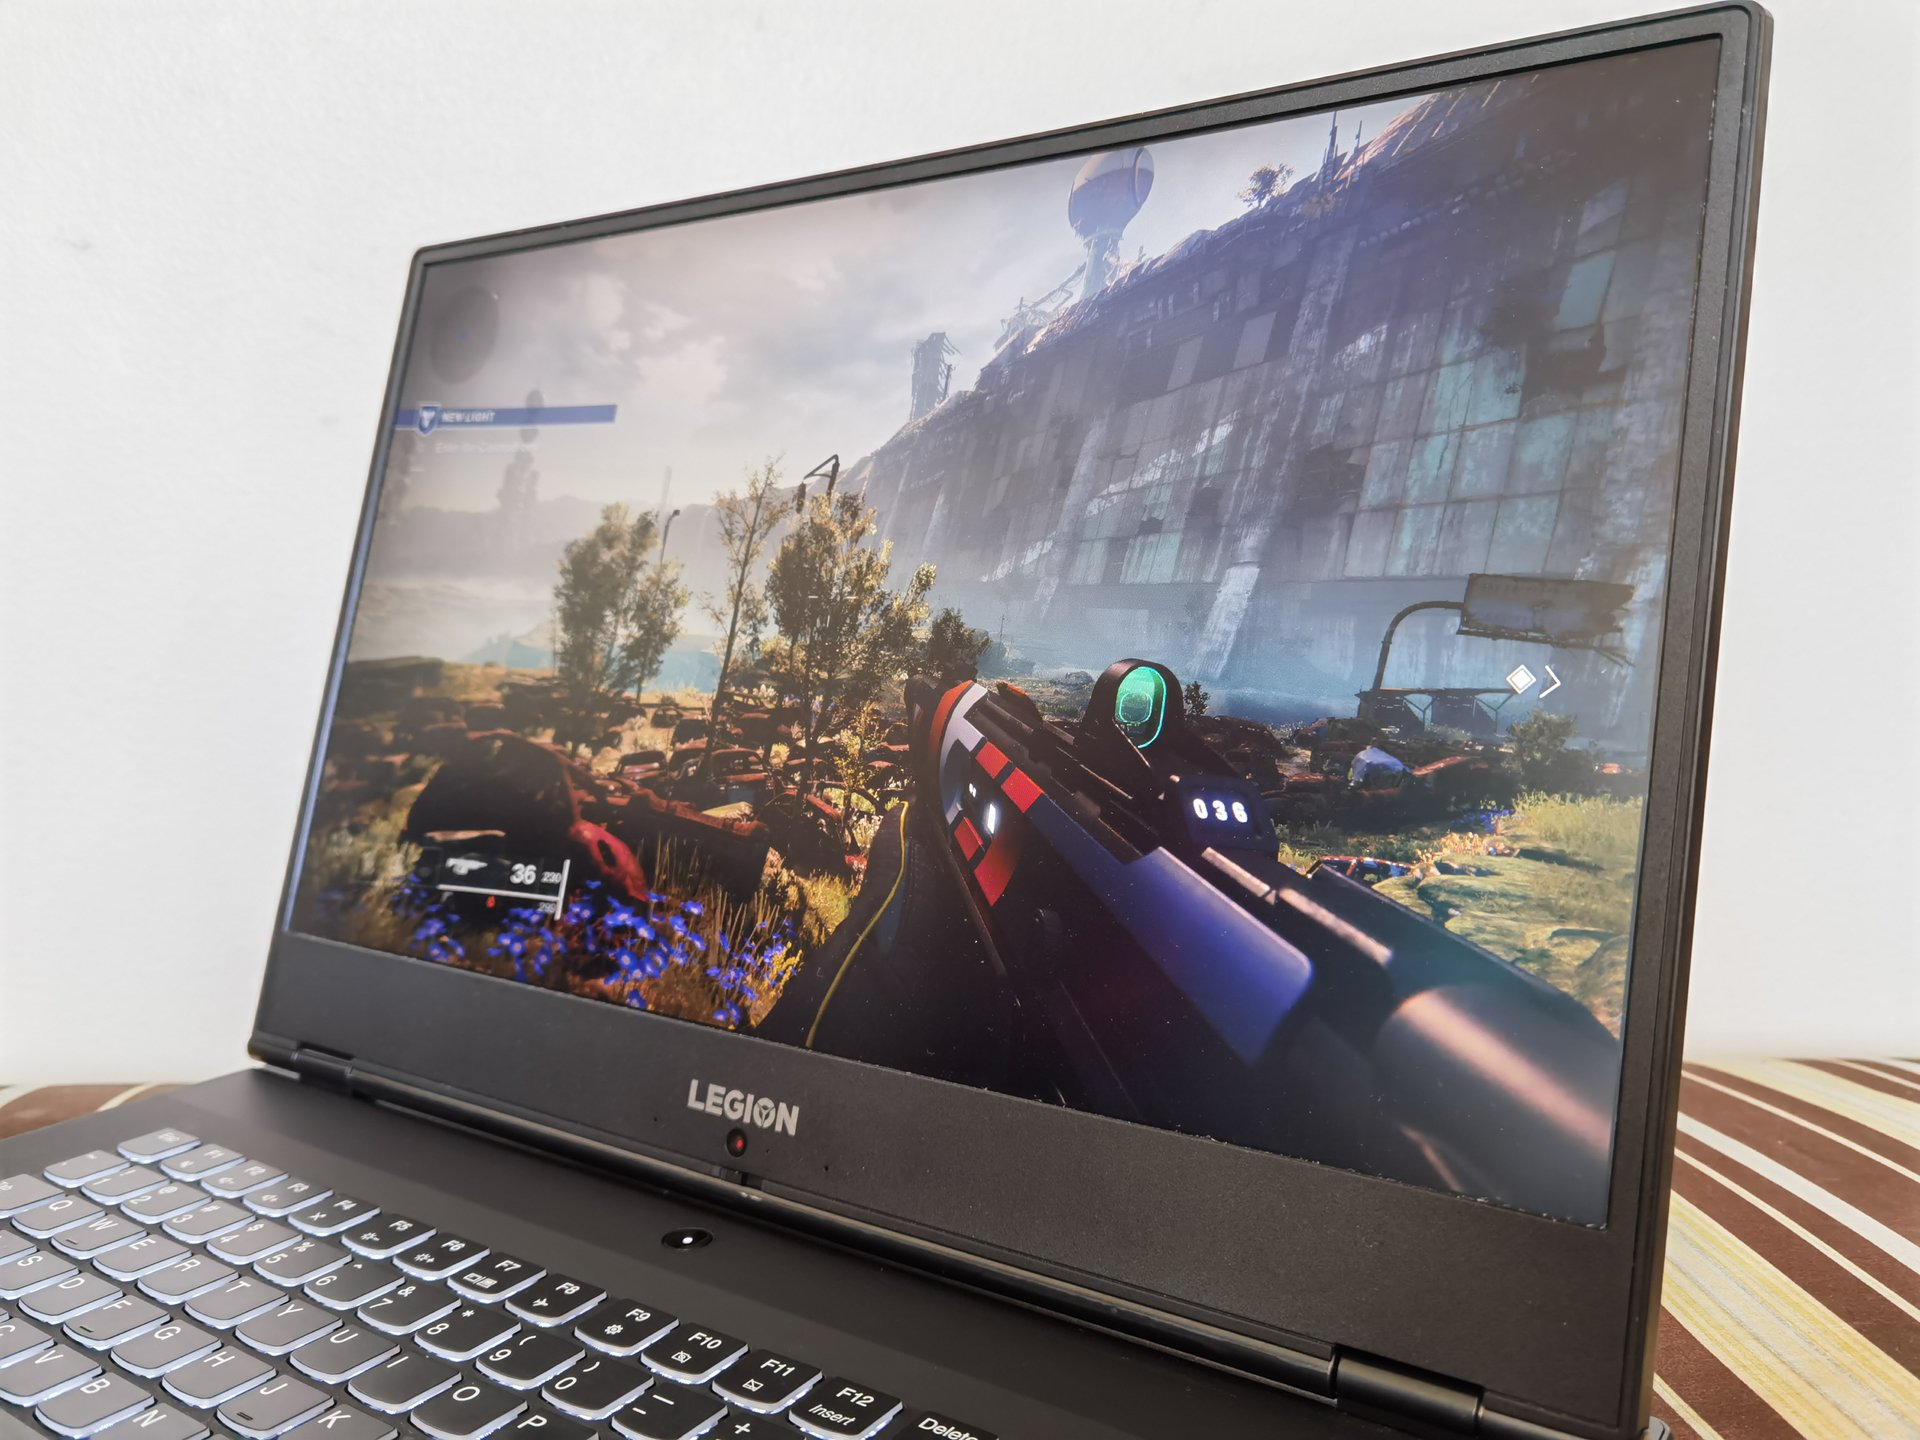 Lenovo Legion Y540 Gaming Laptop pic 1